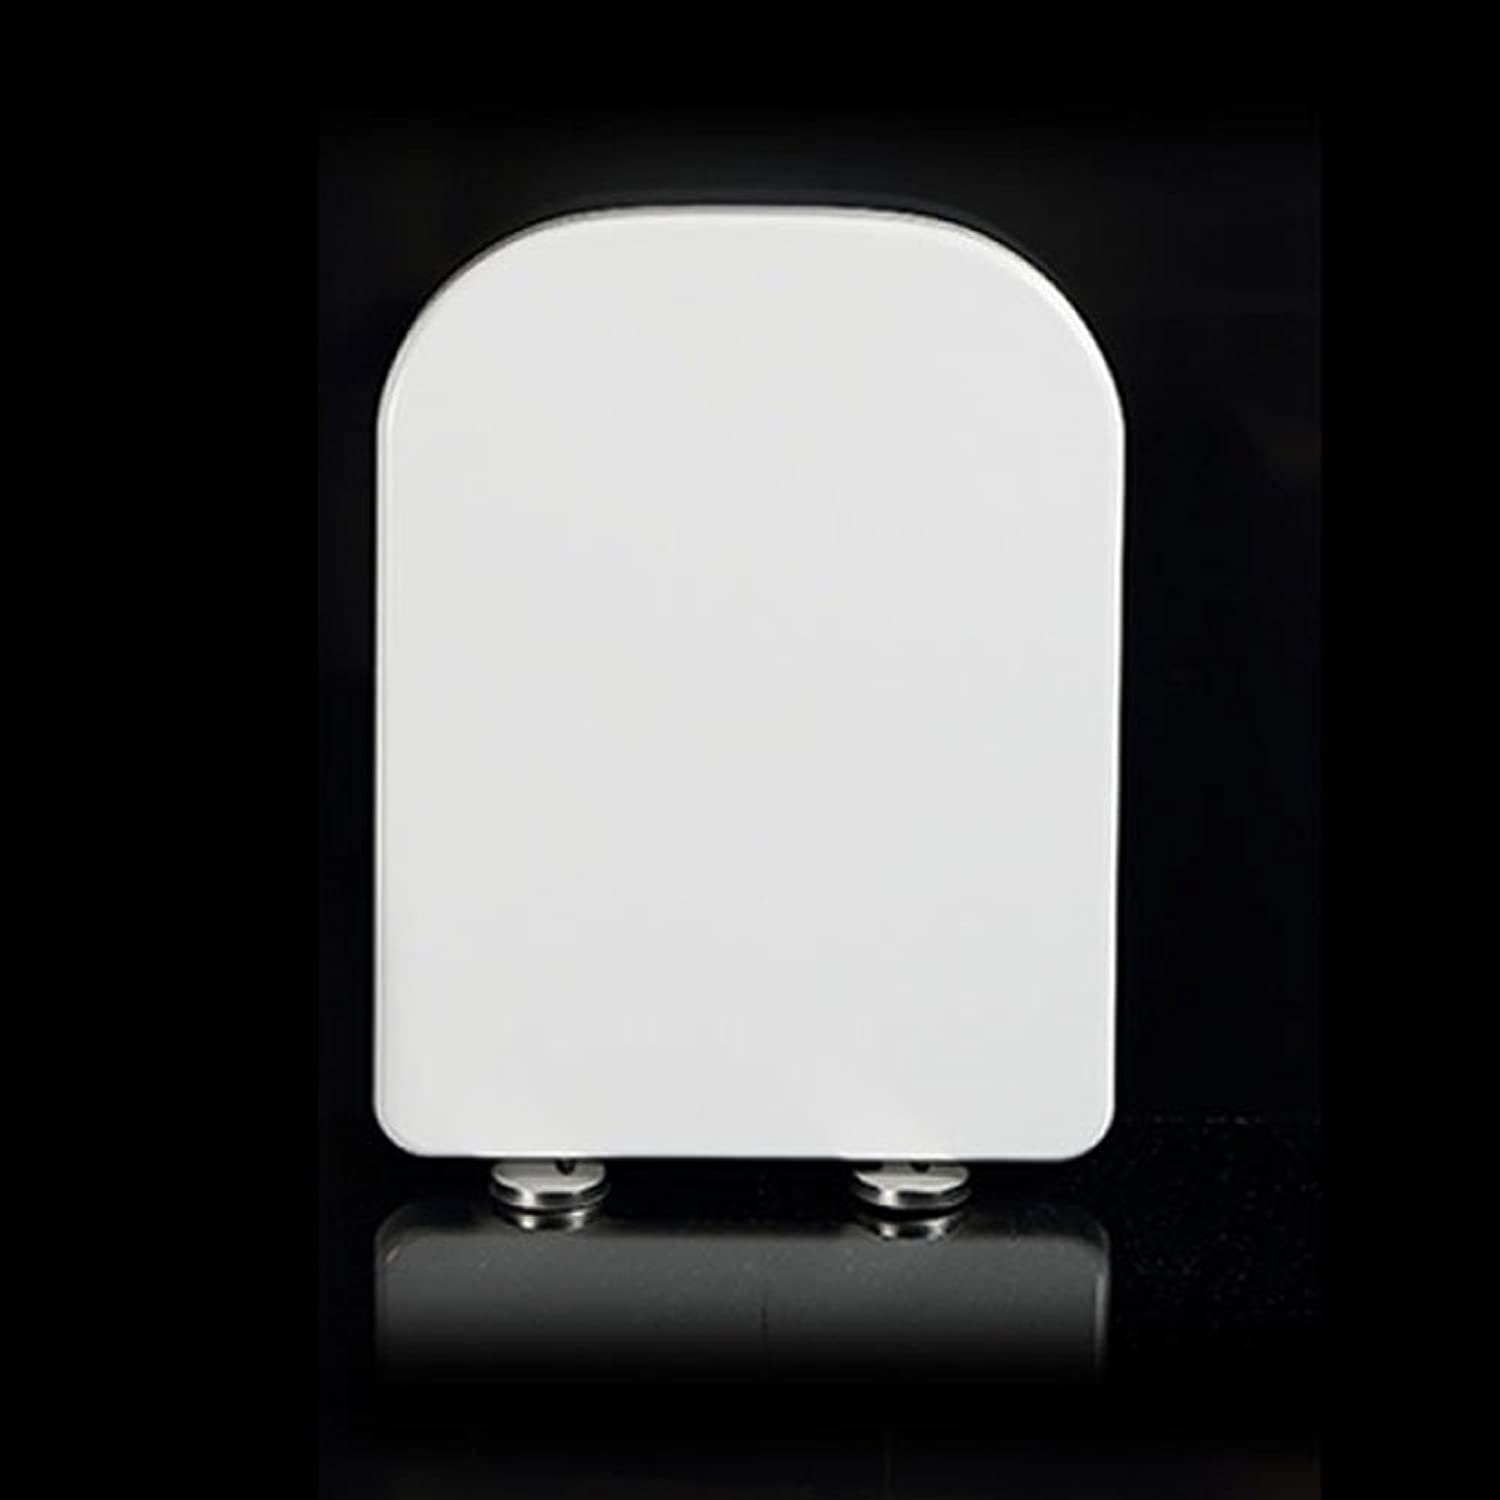 Toilet Seat Universal Toilet Lid Antibacterial Urea-formaldehyde Resin Thickened Ultra Resistant Toilet Cover For U-Shaped V-Shaped Square,O